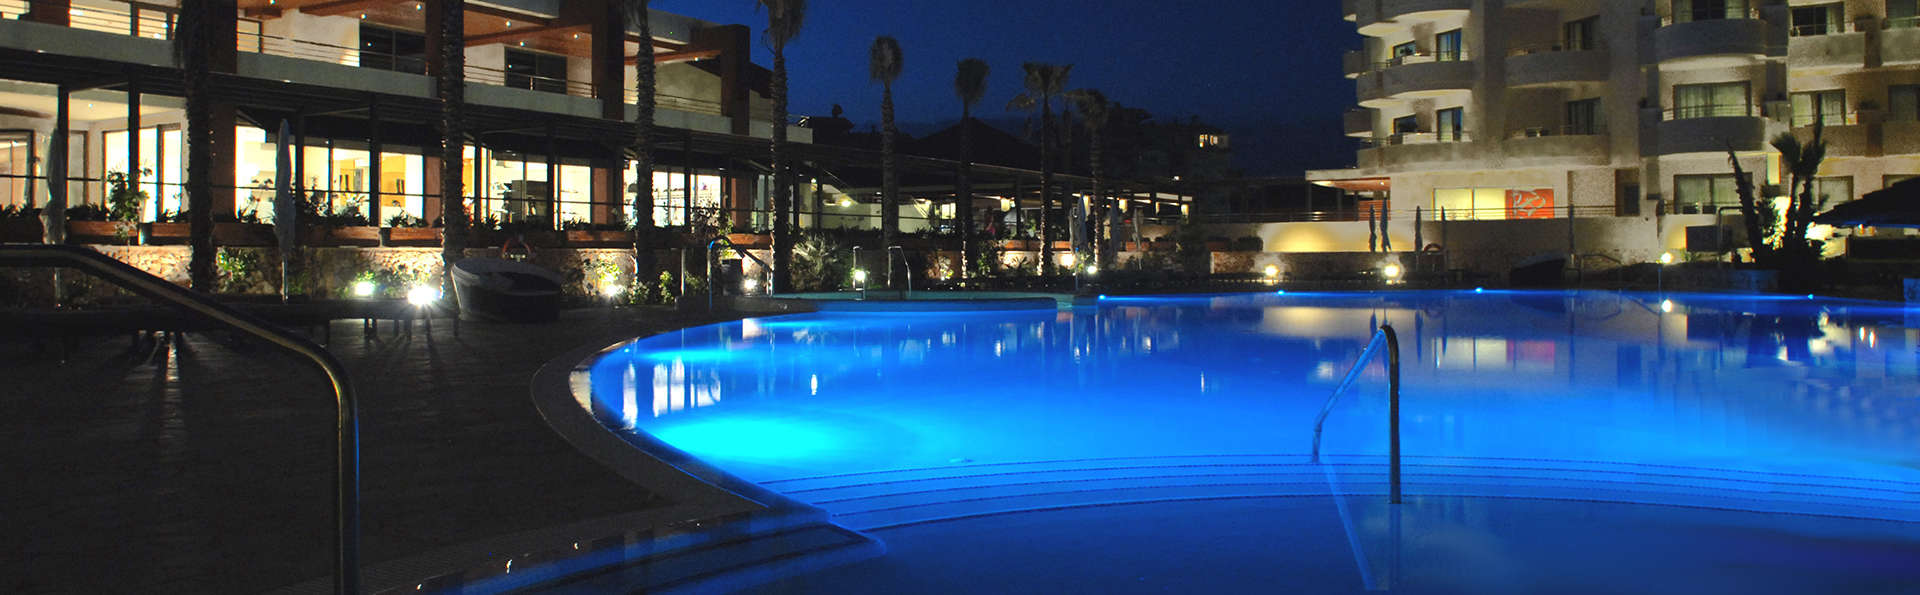 Protur Biomar Gran Hotel & Spa - Edit_Pool8.jpg